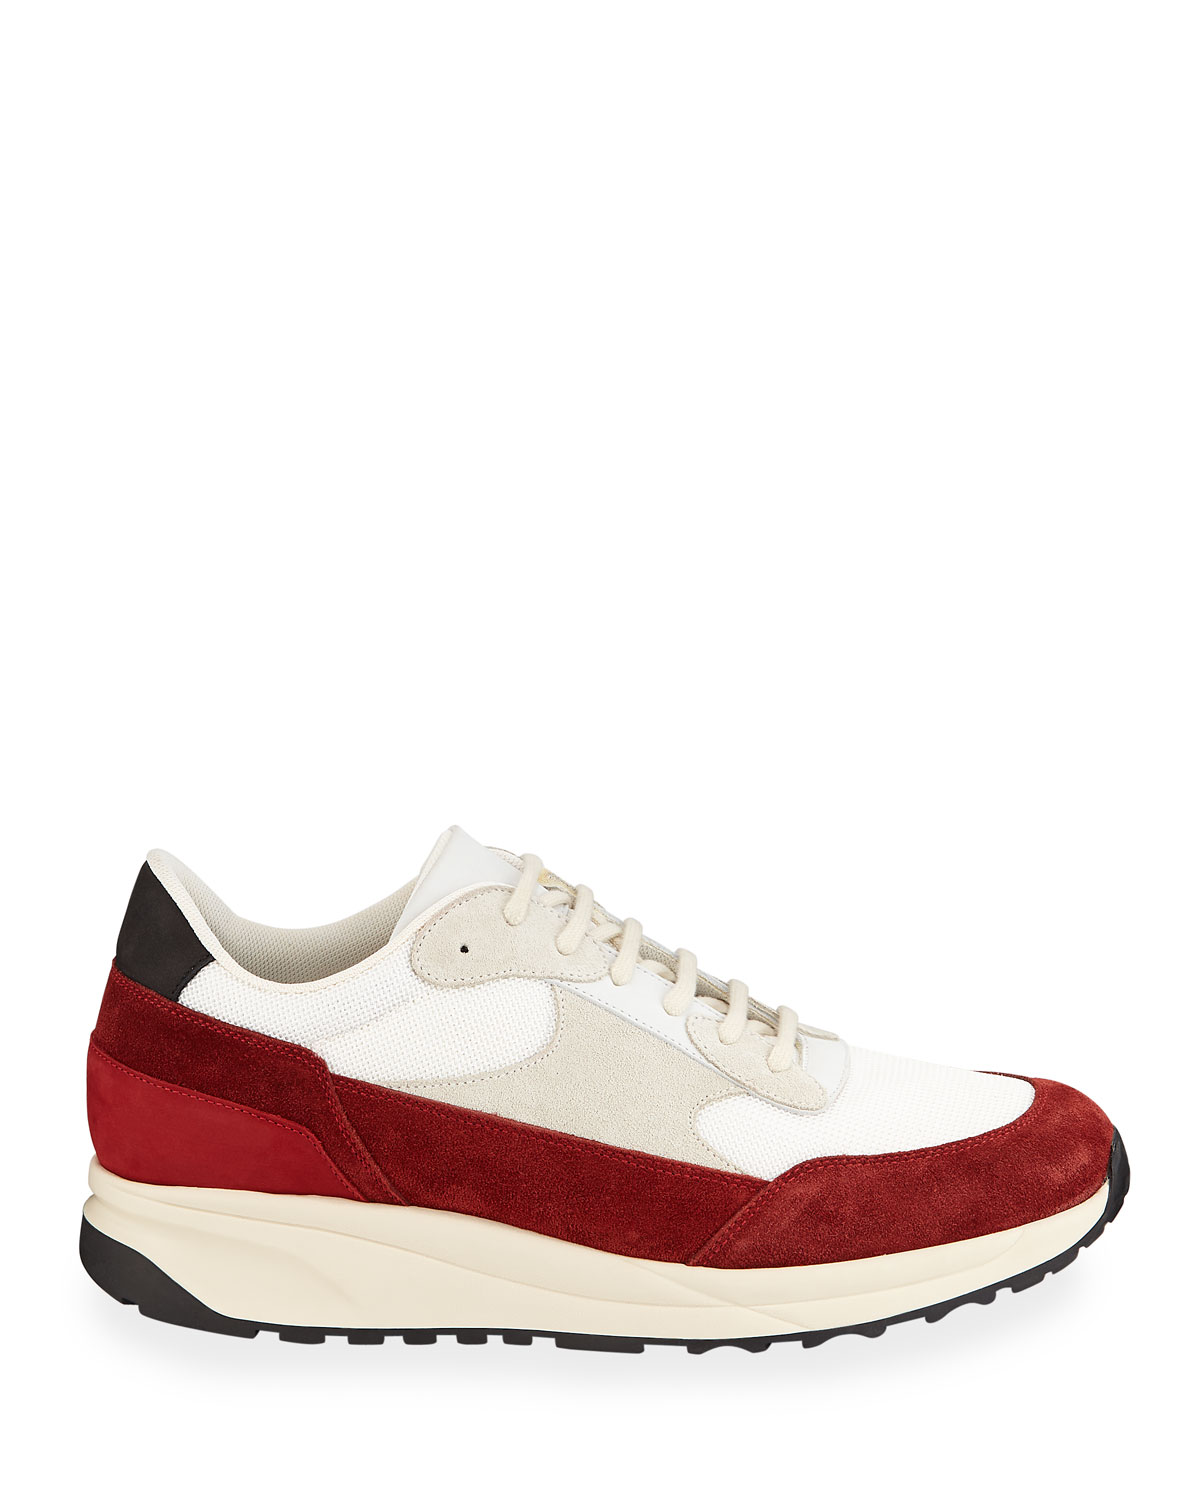 Men's Track Classic Colorblock Suede Sneakers by Common Projects